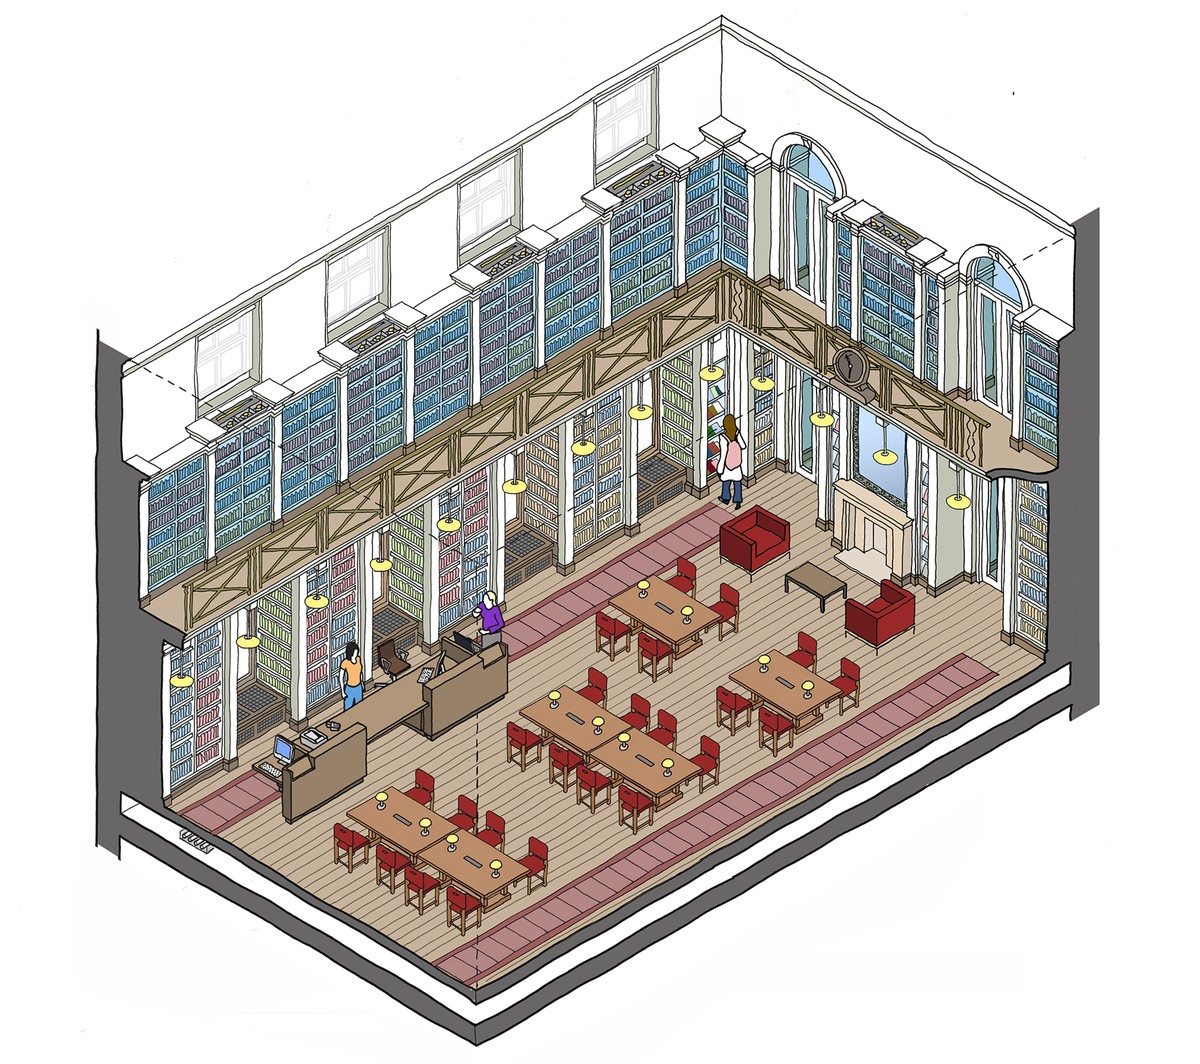 Library sketch proposal